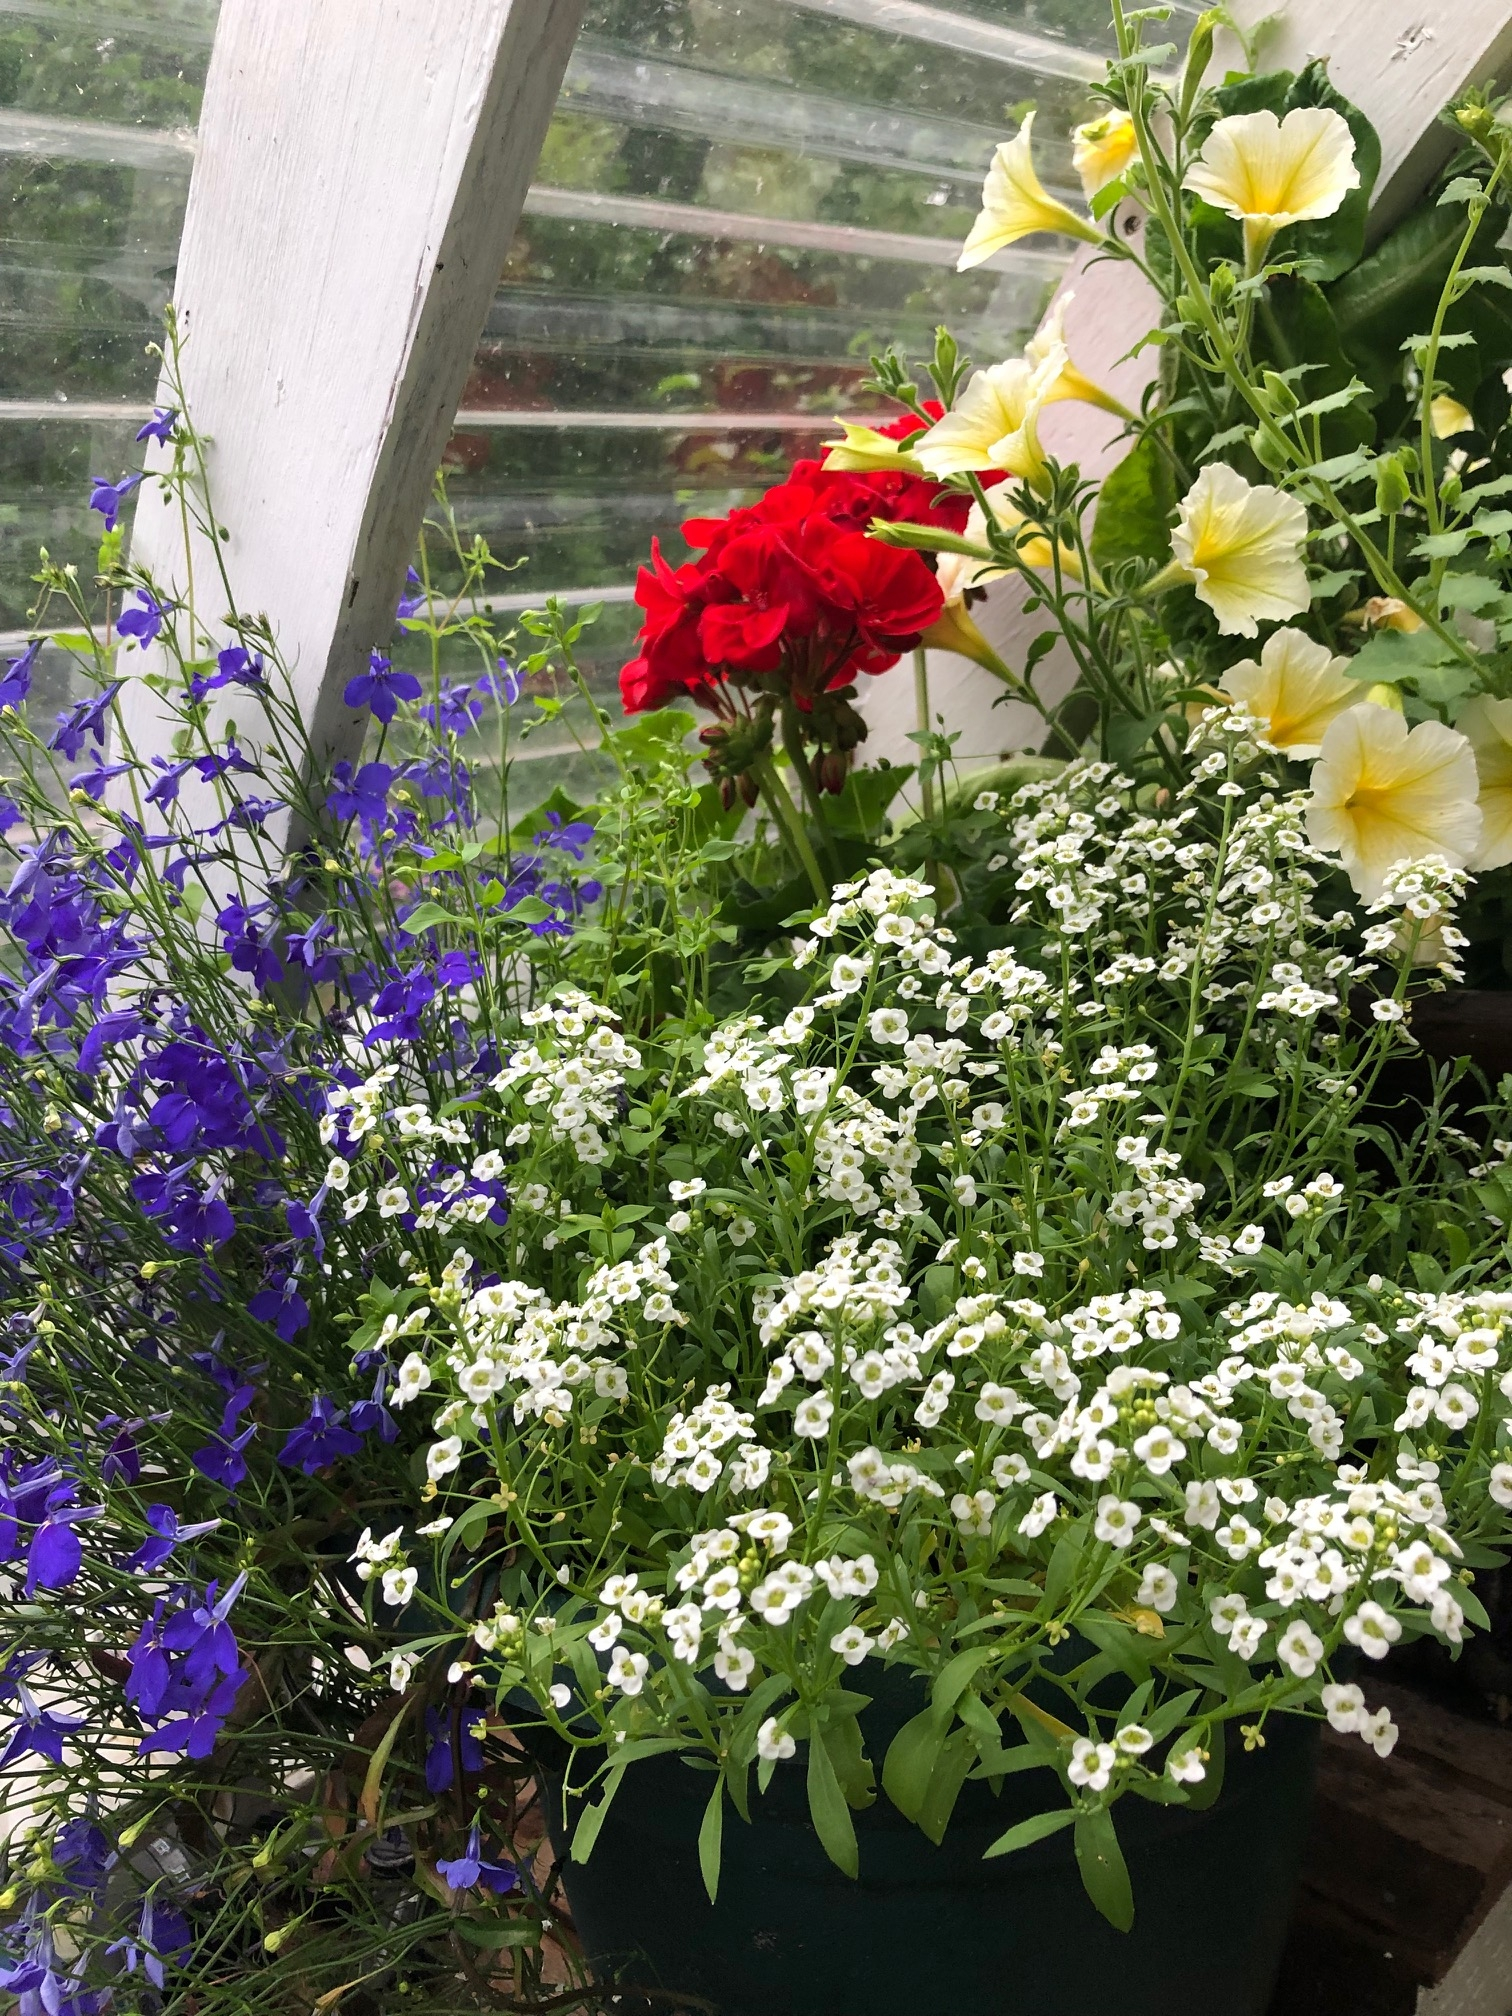 Red, white, blue & gold flowers in a greenhouse